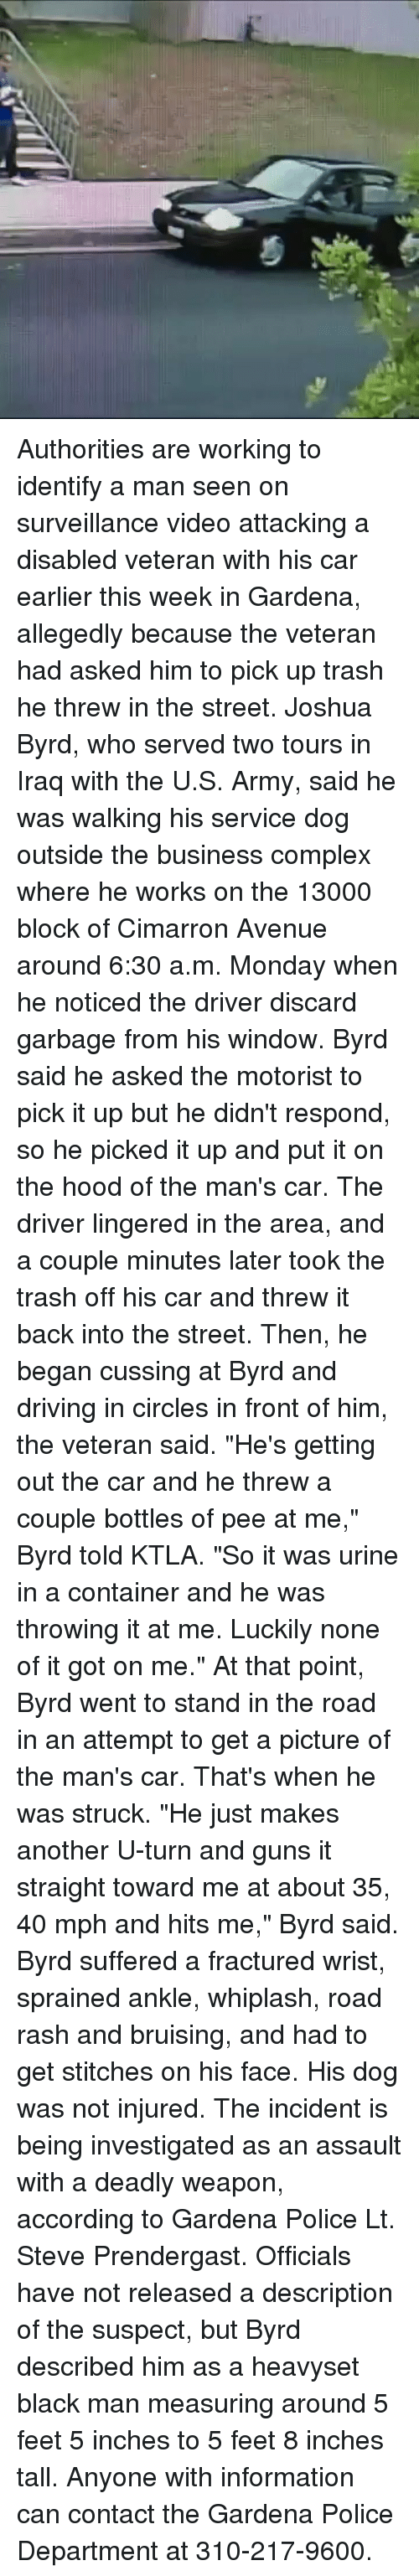 """Complex, Driving, and Guns: Authorities are working to identify a man seen on surveillance video attacking a disabled veteran with his car earlier this week in Gardena, allegedly because the veteran had asked him to pick up trash he threw in the street. Joshua Byrd, who served two tours in Iraq with the U.S. Army, said he was walking his service dog outside the business complex where he works on the 13000 block of Cimarron Avenue around 6:30 a.m. Monday when he noticed the driver discard garbage from his window. Byrd said he asked the motorist to pick it up but he didn't respond, so he picked it up and put it on the hood of the man's car. The driver lingered in the area, and a couple minutes later took the trash off his car and threw it back into the street. Then, he began cussing at Byrd and driving in circles in front of him, the veteran said. """"He's getting out the car and he threw a couple bottles of pee at me,"""" Byrd told KTLA. """"So it was urine in a container and he was throwing it at me. Luckily none of it got on me."""" At that point, Byrd went to stand in the road in an attempt to get a picture of the man's car. That's when he was struck. """"He just makes another U-turn and guns it straight toward me at about 35, 40 mph and hits me,"""" Byrd said. Byrd suffered a fractured wrist, sprained ankle, whiplash, road rash and bruising, and had to get stitches on his face. His dog was not injured. The incident is being investigated as an assault with a deadly weapon, according to Gardena Police Lt. Steve Prendergast. Officials have not released a description of the suspect, but Byrd described him as a heavyset black man measuring around 5 feet 5 inches to 5 feet 8 inches tall. Anyone with information can contact the Gardena Police Department at 310-217-9600."""